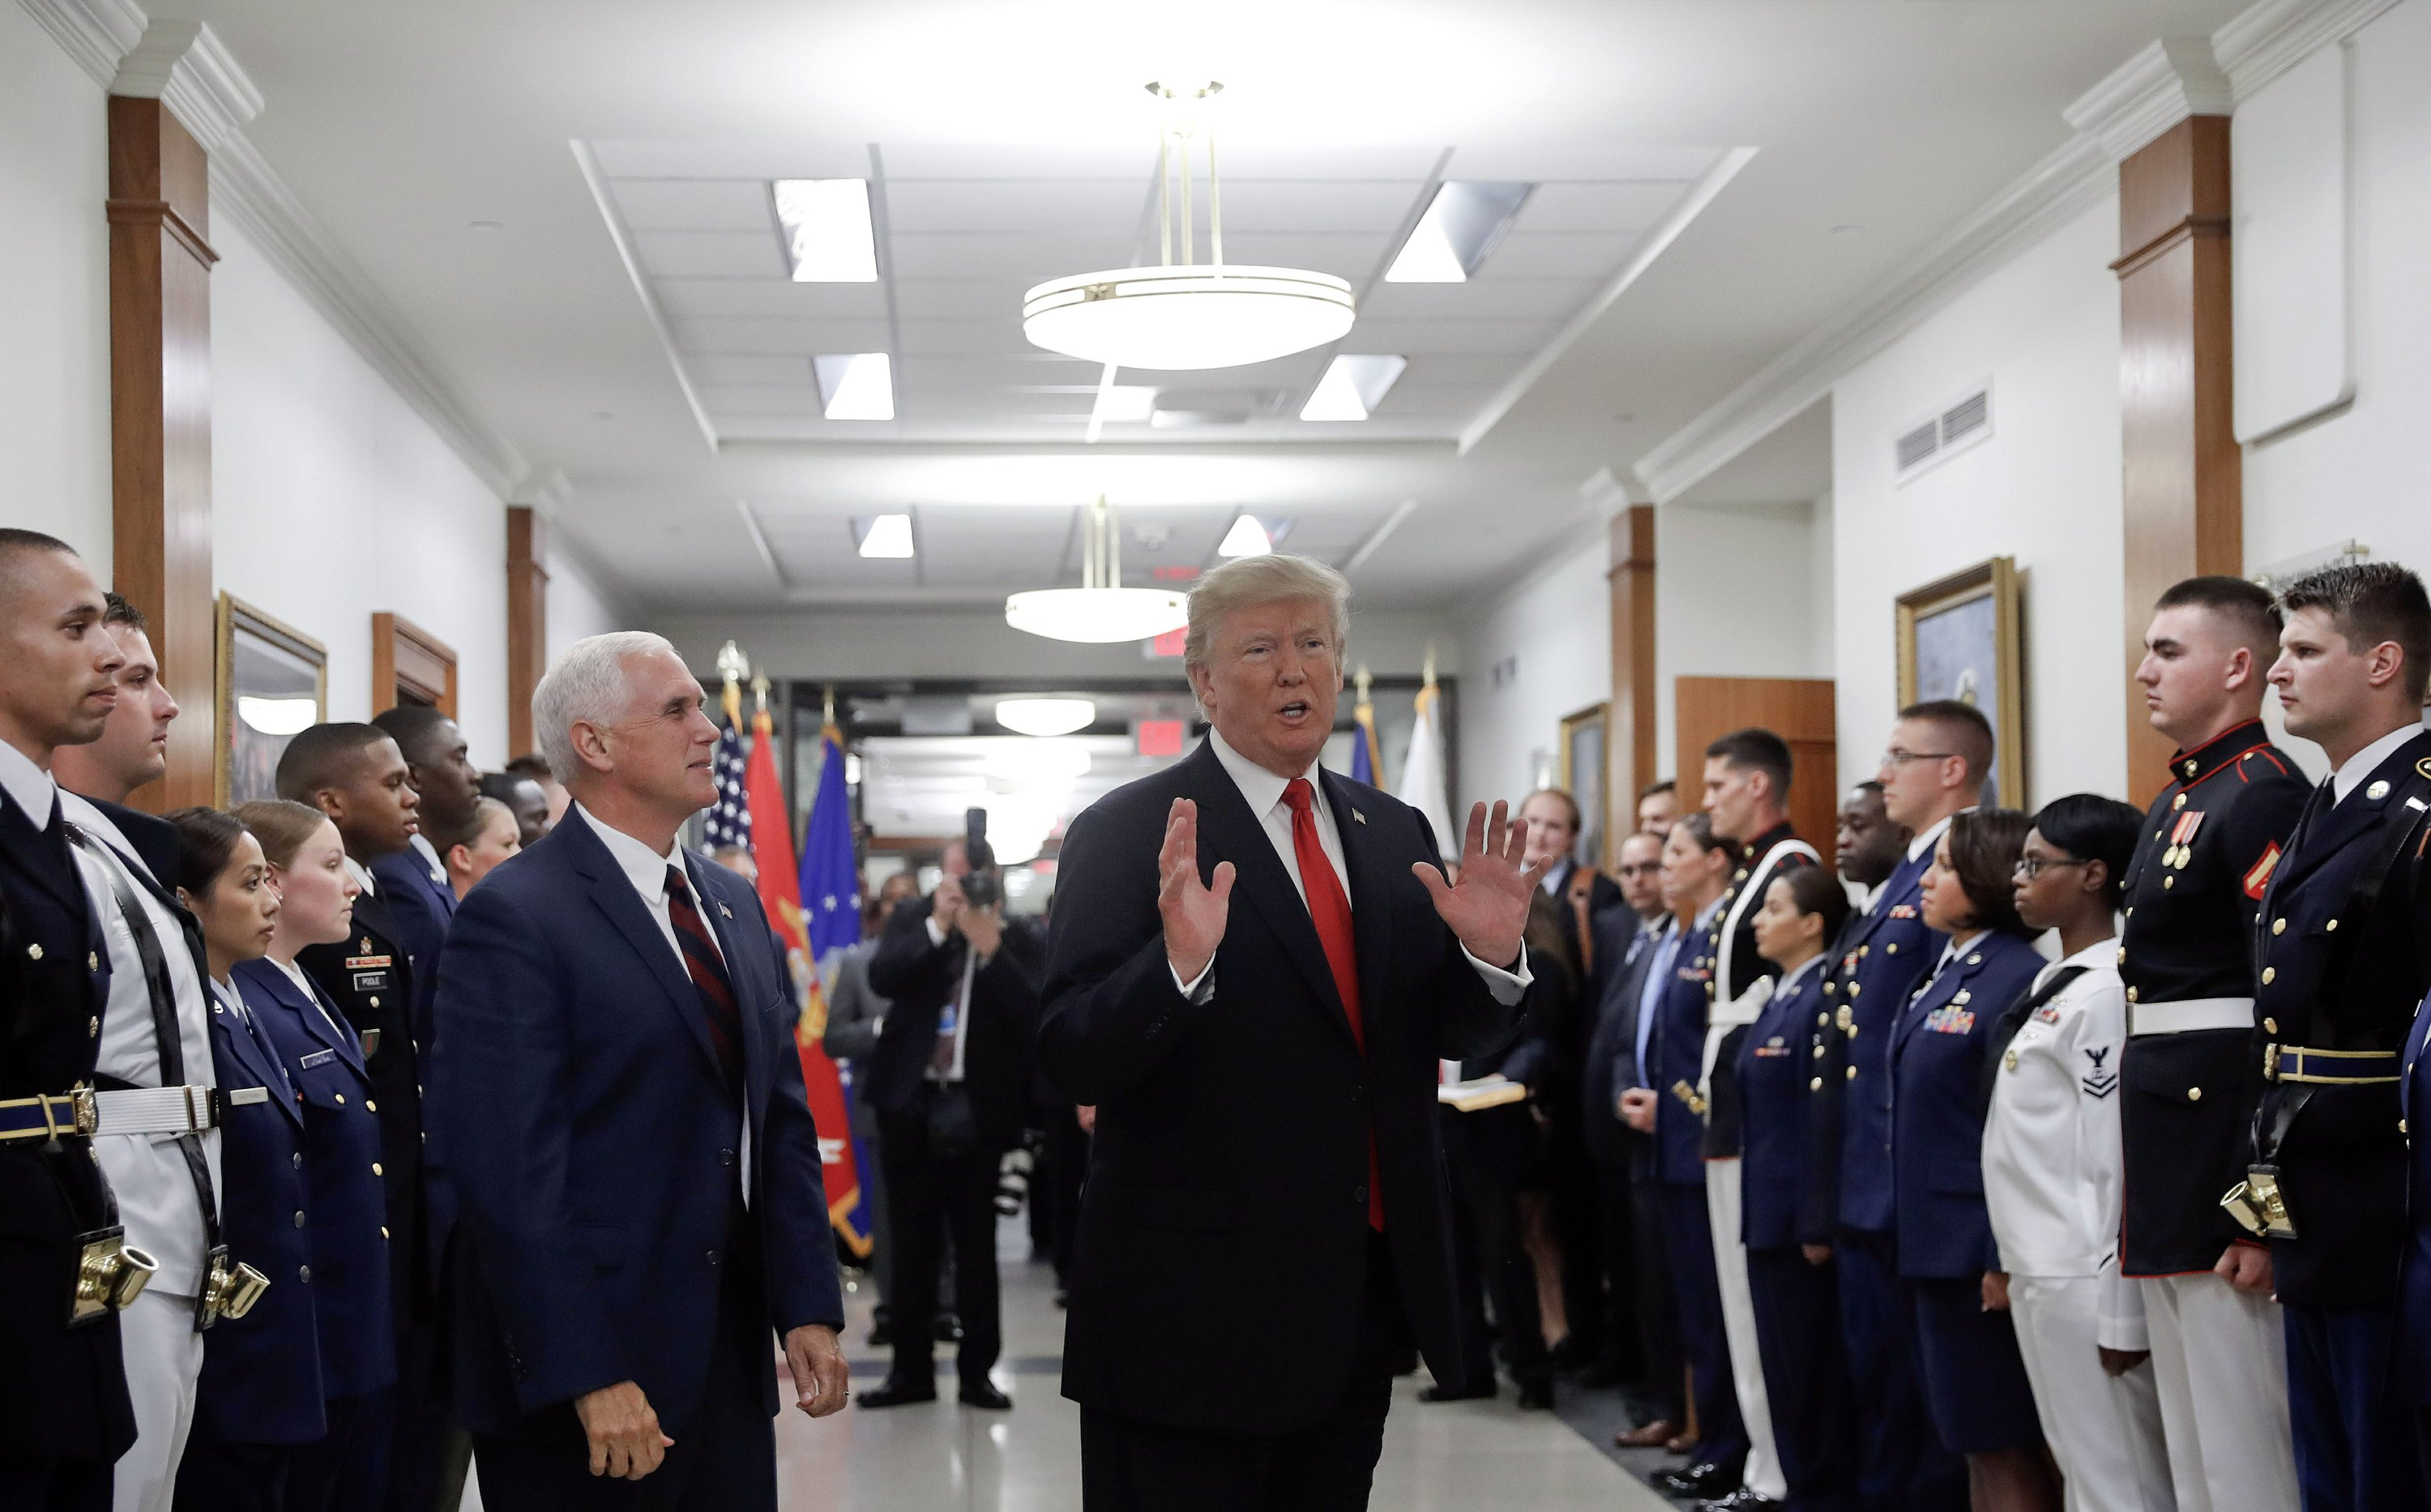 Trump's nuclear strategy seeks new weapons to counter Russia